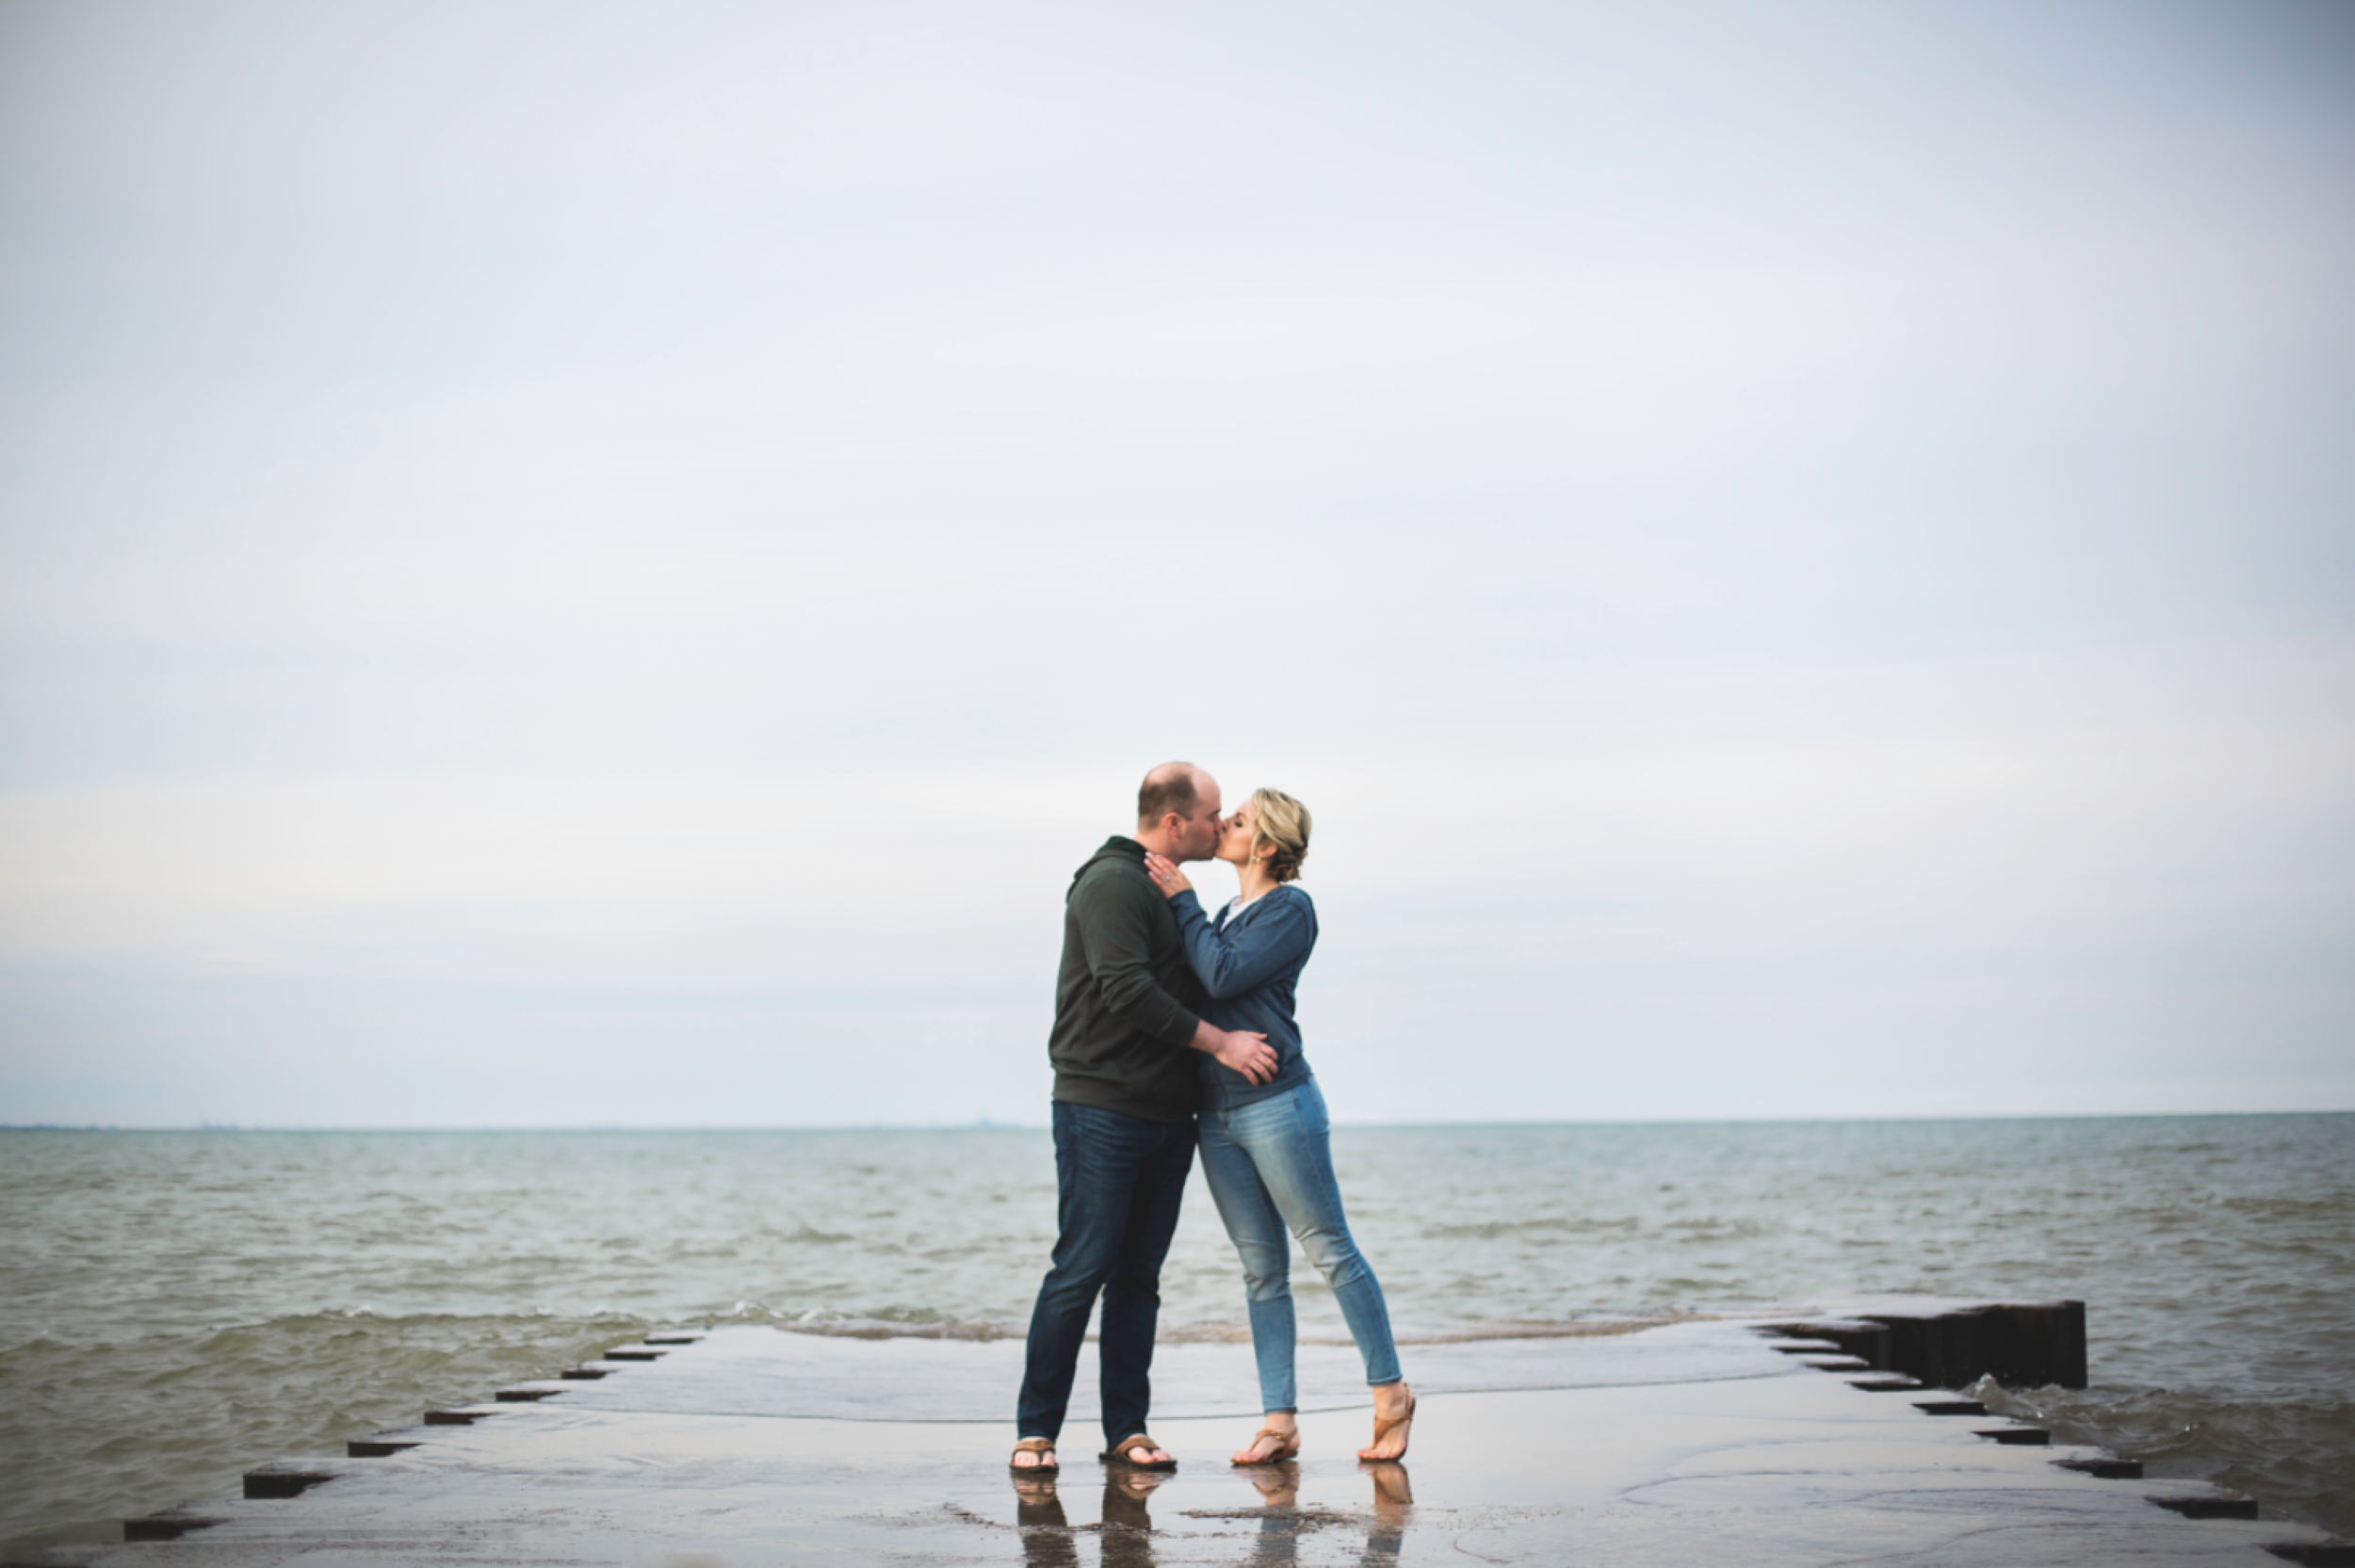 Engagement-Session-Hamilton-Burlington-Oakville-Toronto-Niagara-Wedding-Photographer-Engaged-Photography-Waterfront-HamOnt-Engaged-Moments-by-Lauren-Photo-Image-18.png